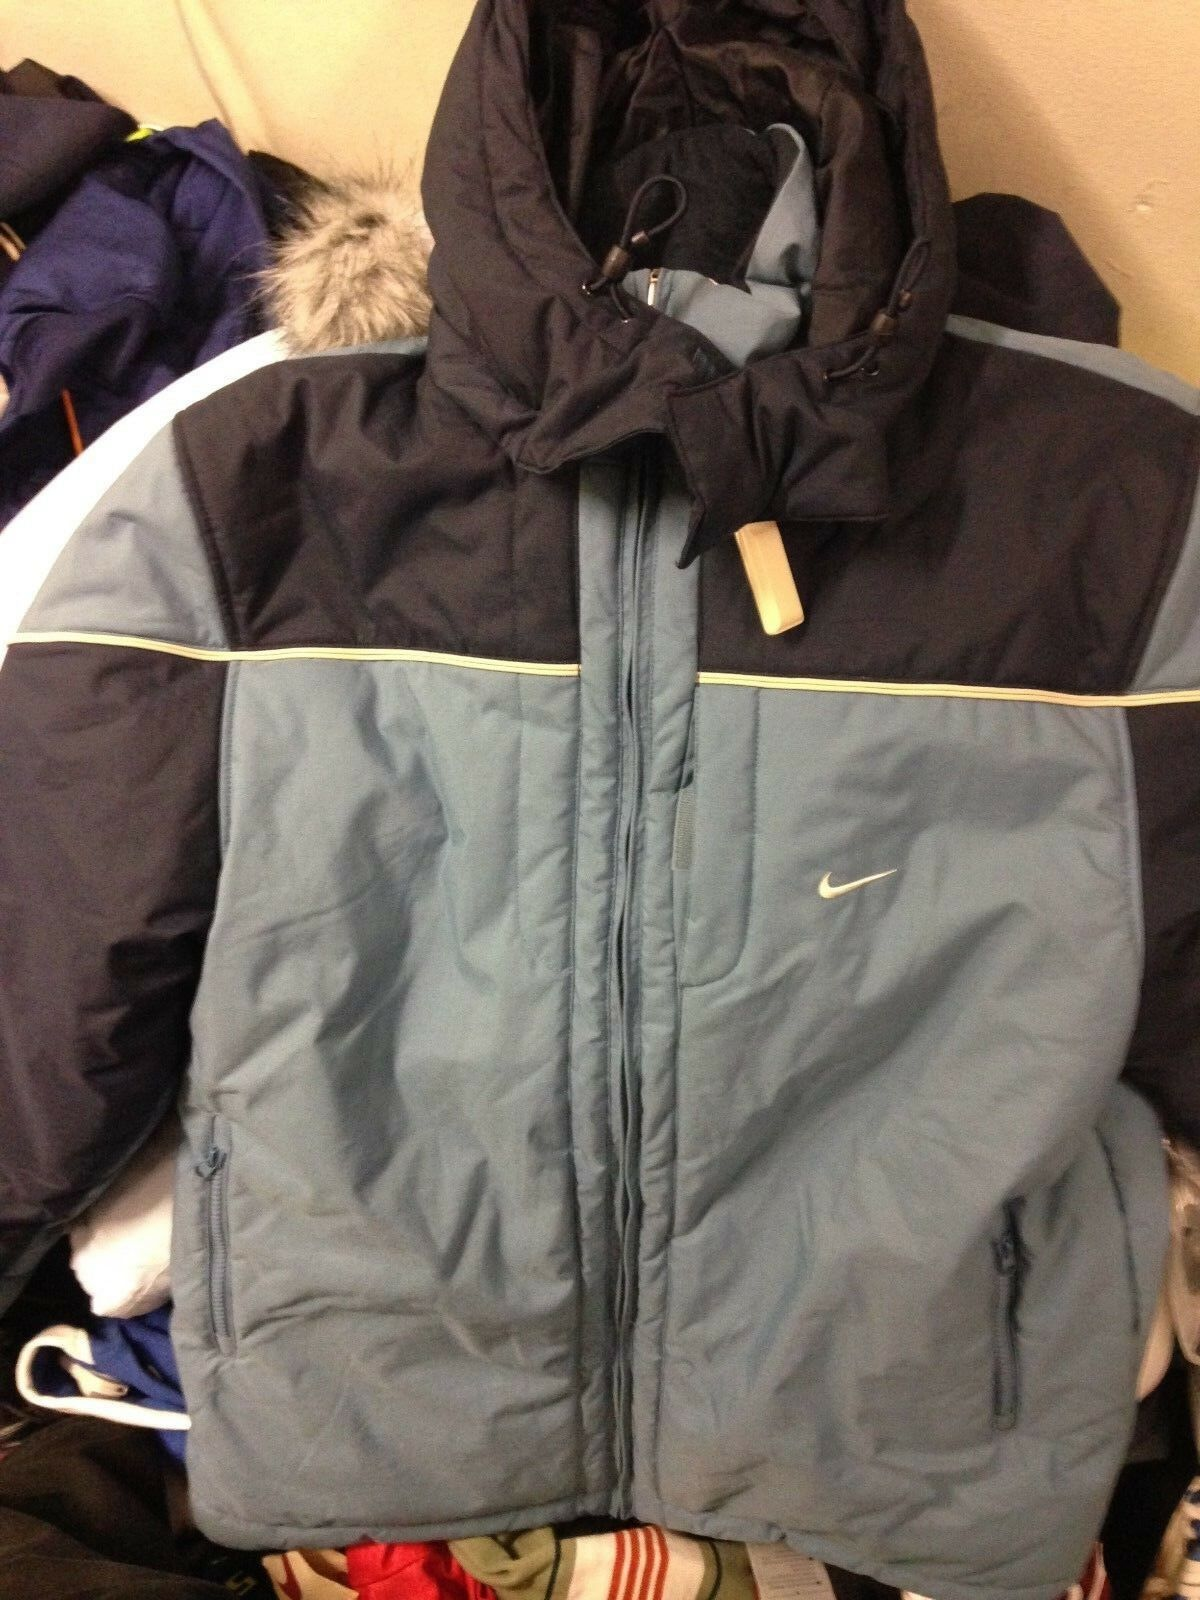 NIKE WINTER COAT IN NAVY IN small 34 36 or LARGE 40 42 42  INCH MID LENGHTAT